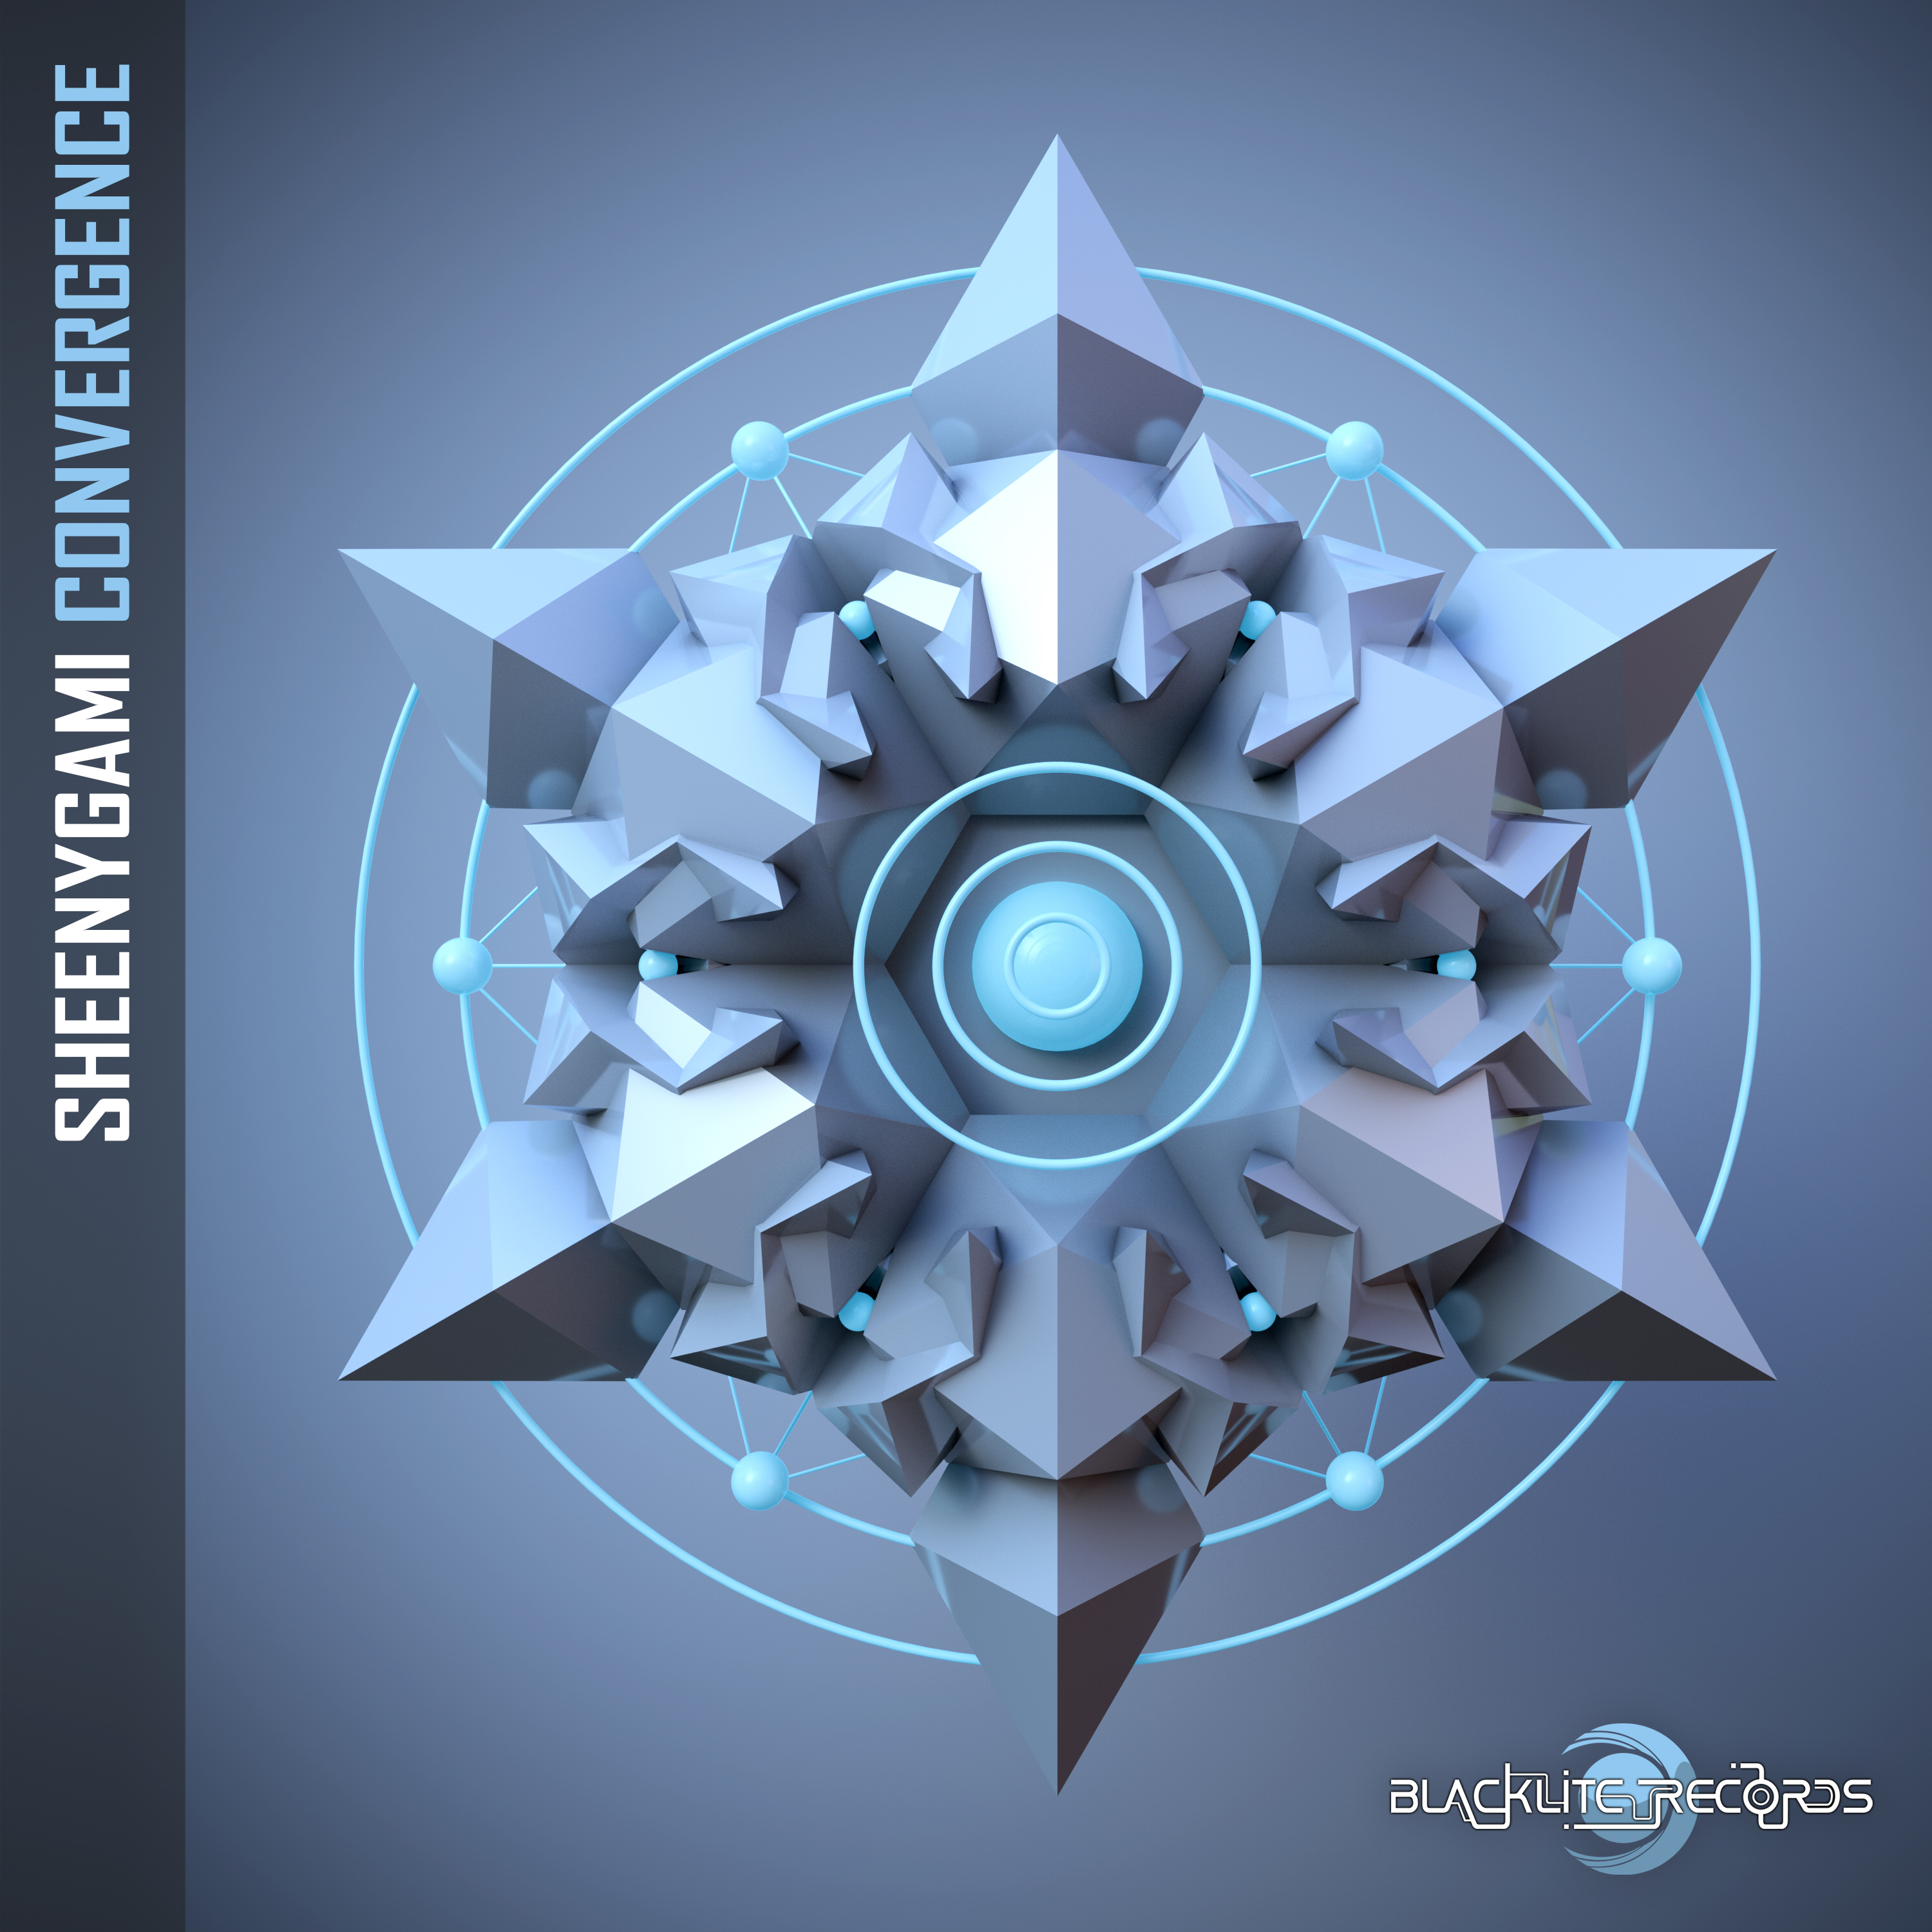 Sheenygami - Convergence (Original mix)